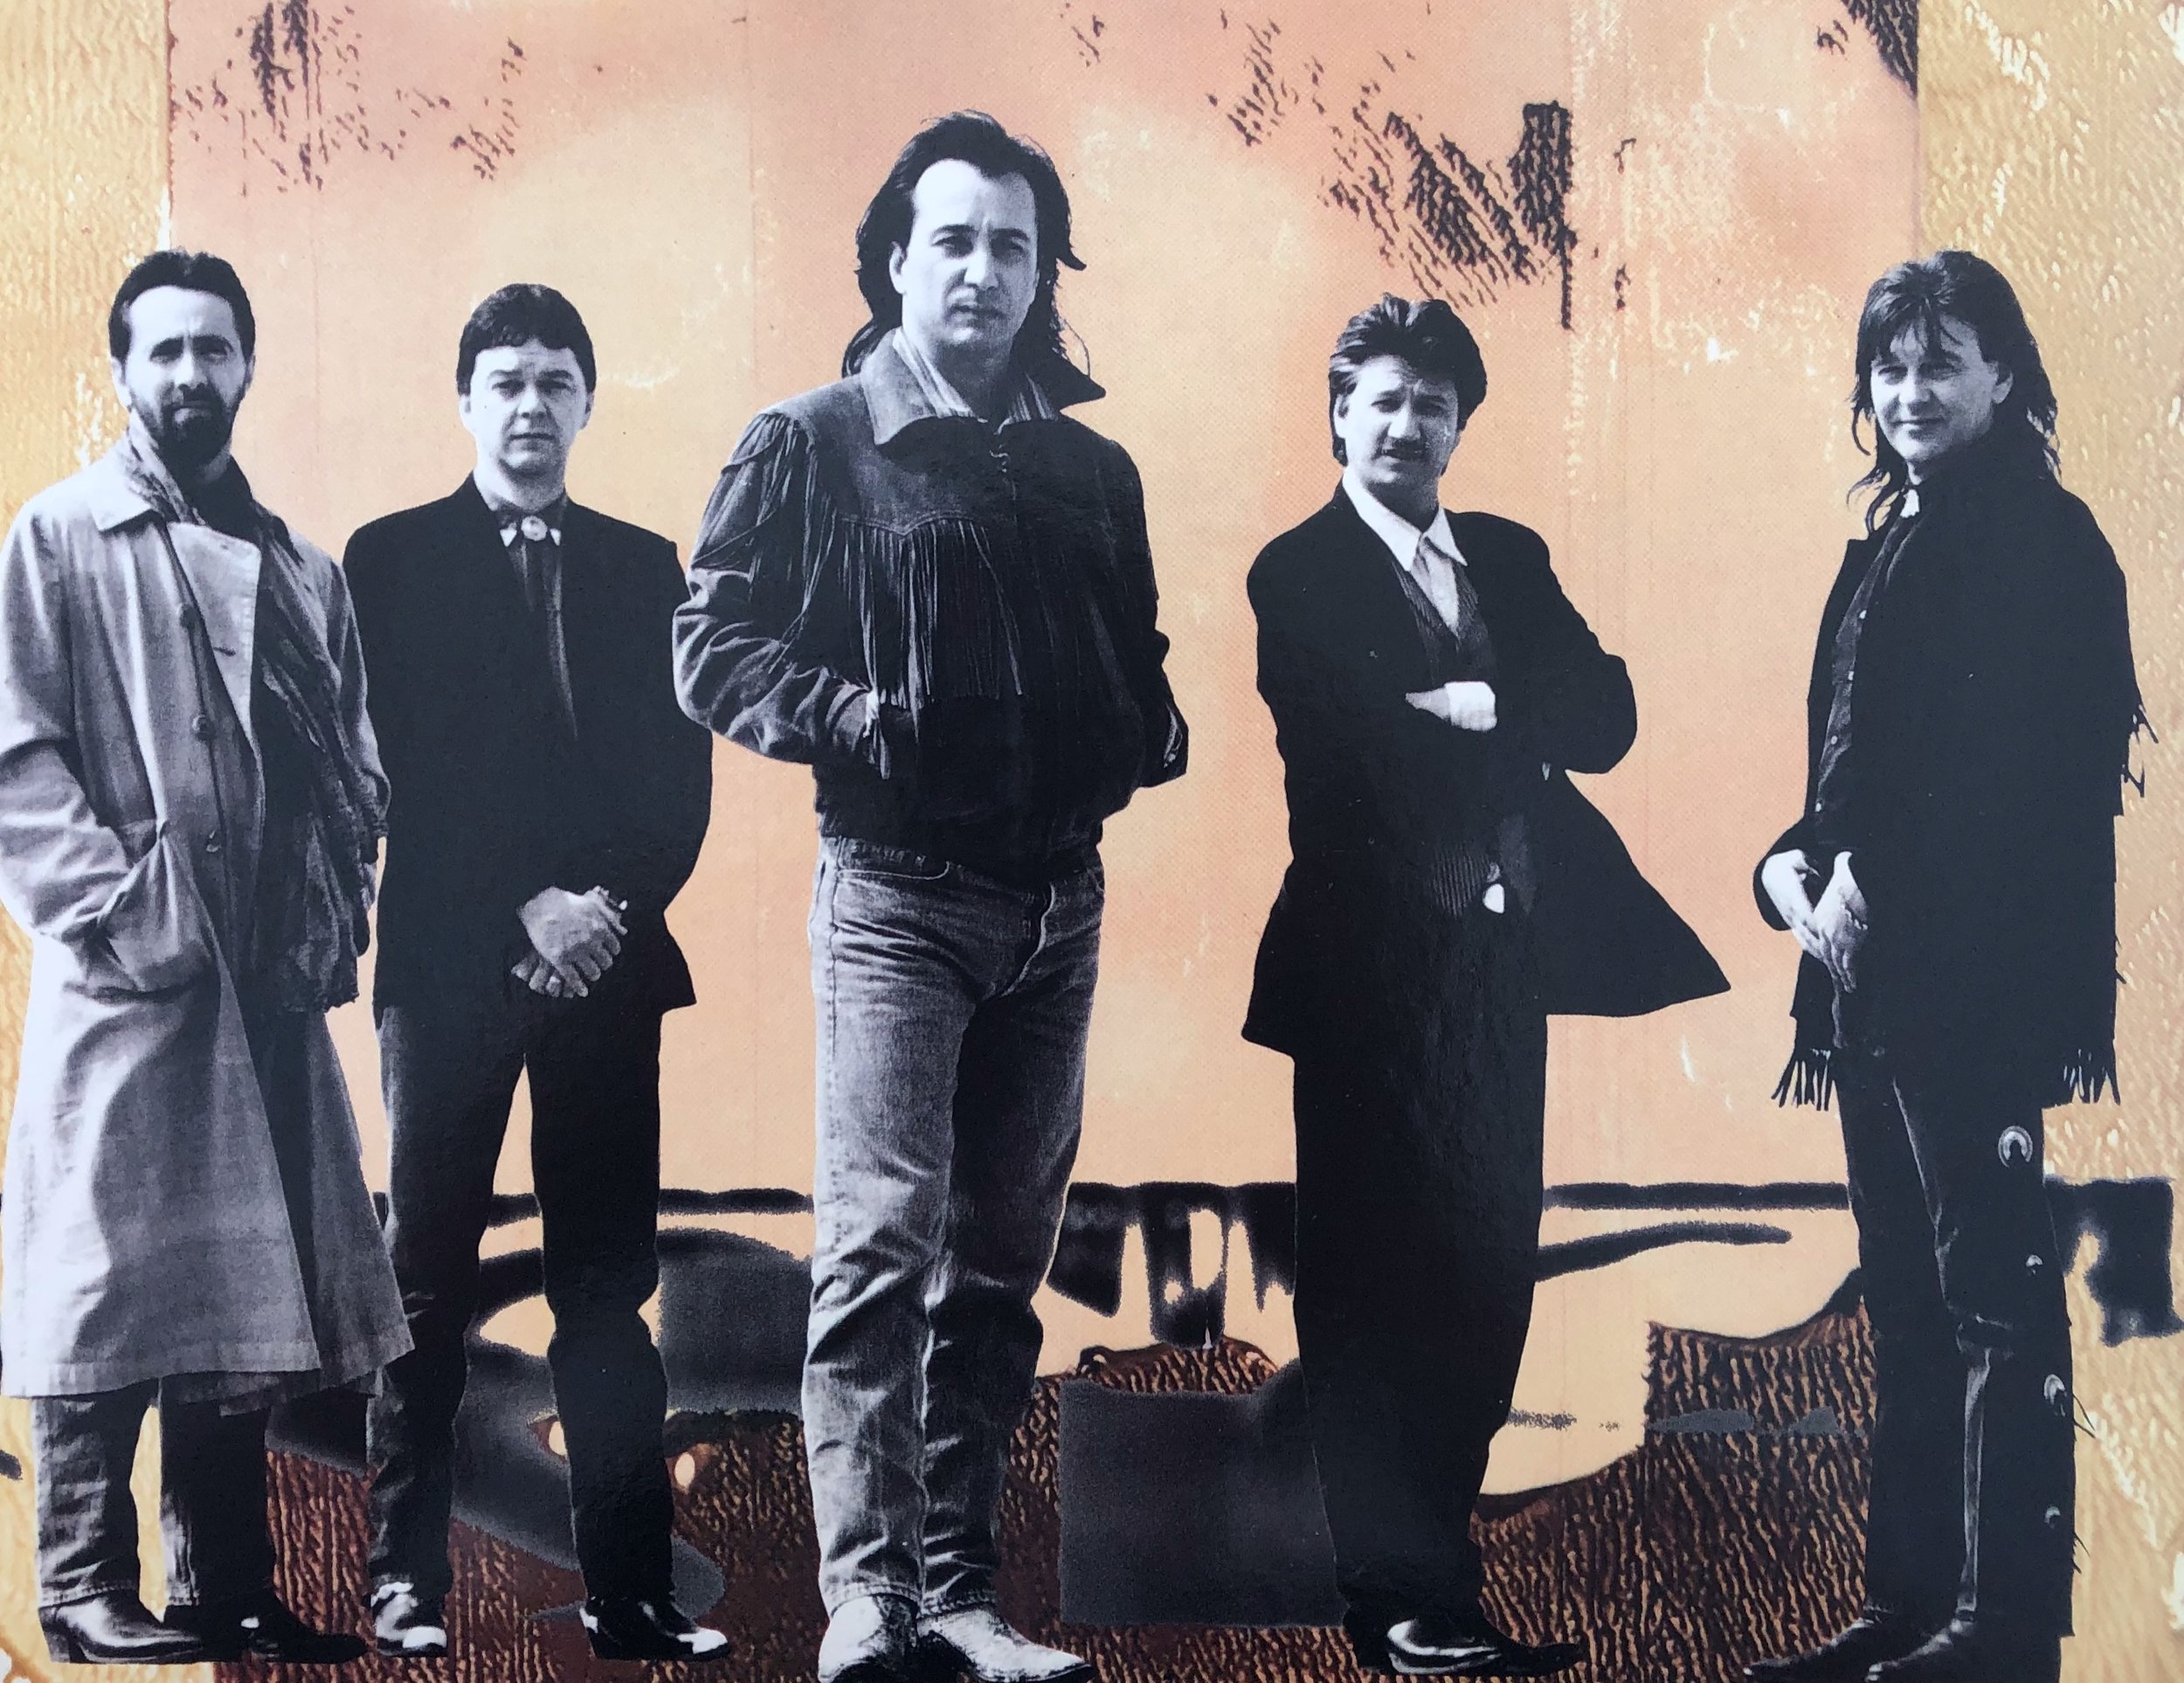 GEORGE GRANTHAM, RUSTY YOUNG, JIM MESSINA, RICHIE FURAY, AND RANDY MEISNER (1989)